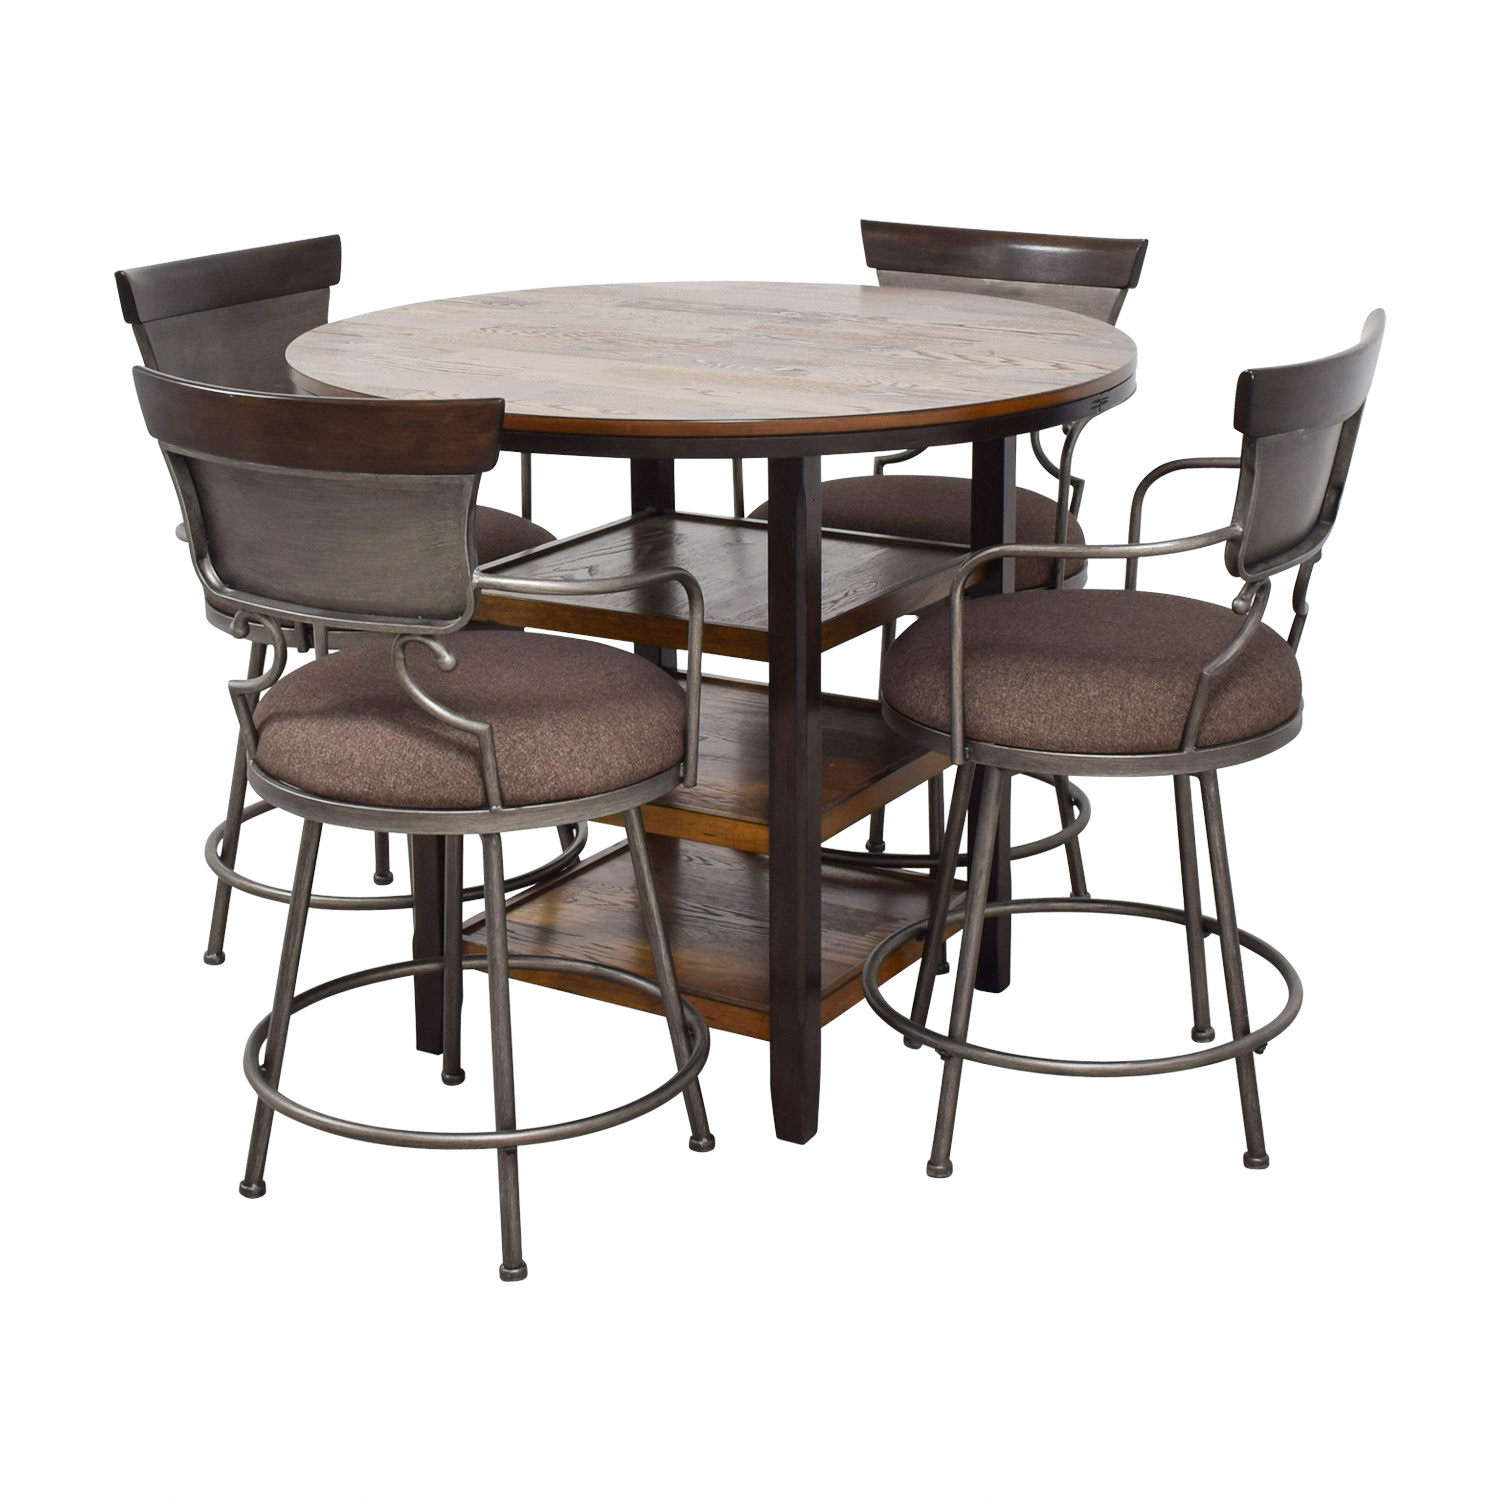 82% OFF - Ashley Furniture Ashley Furniture Counter Height ...